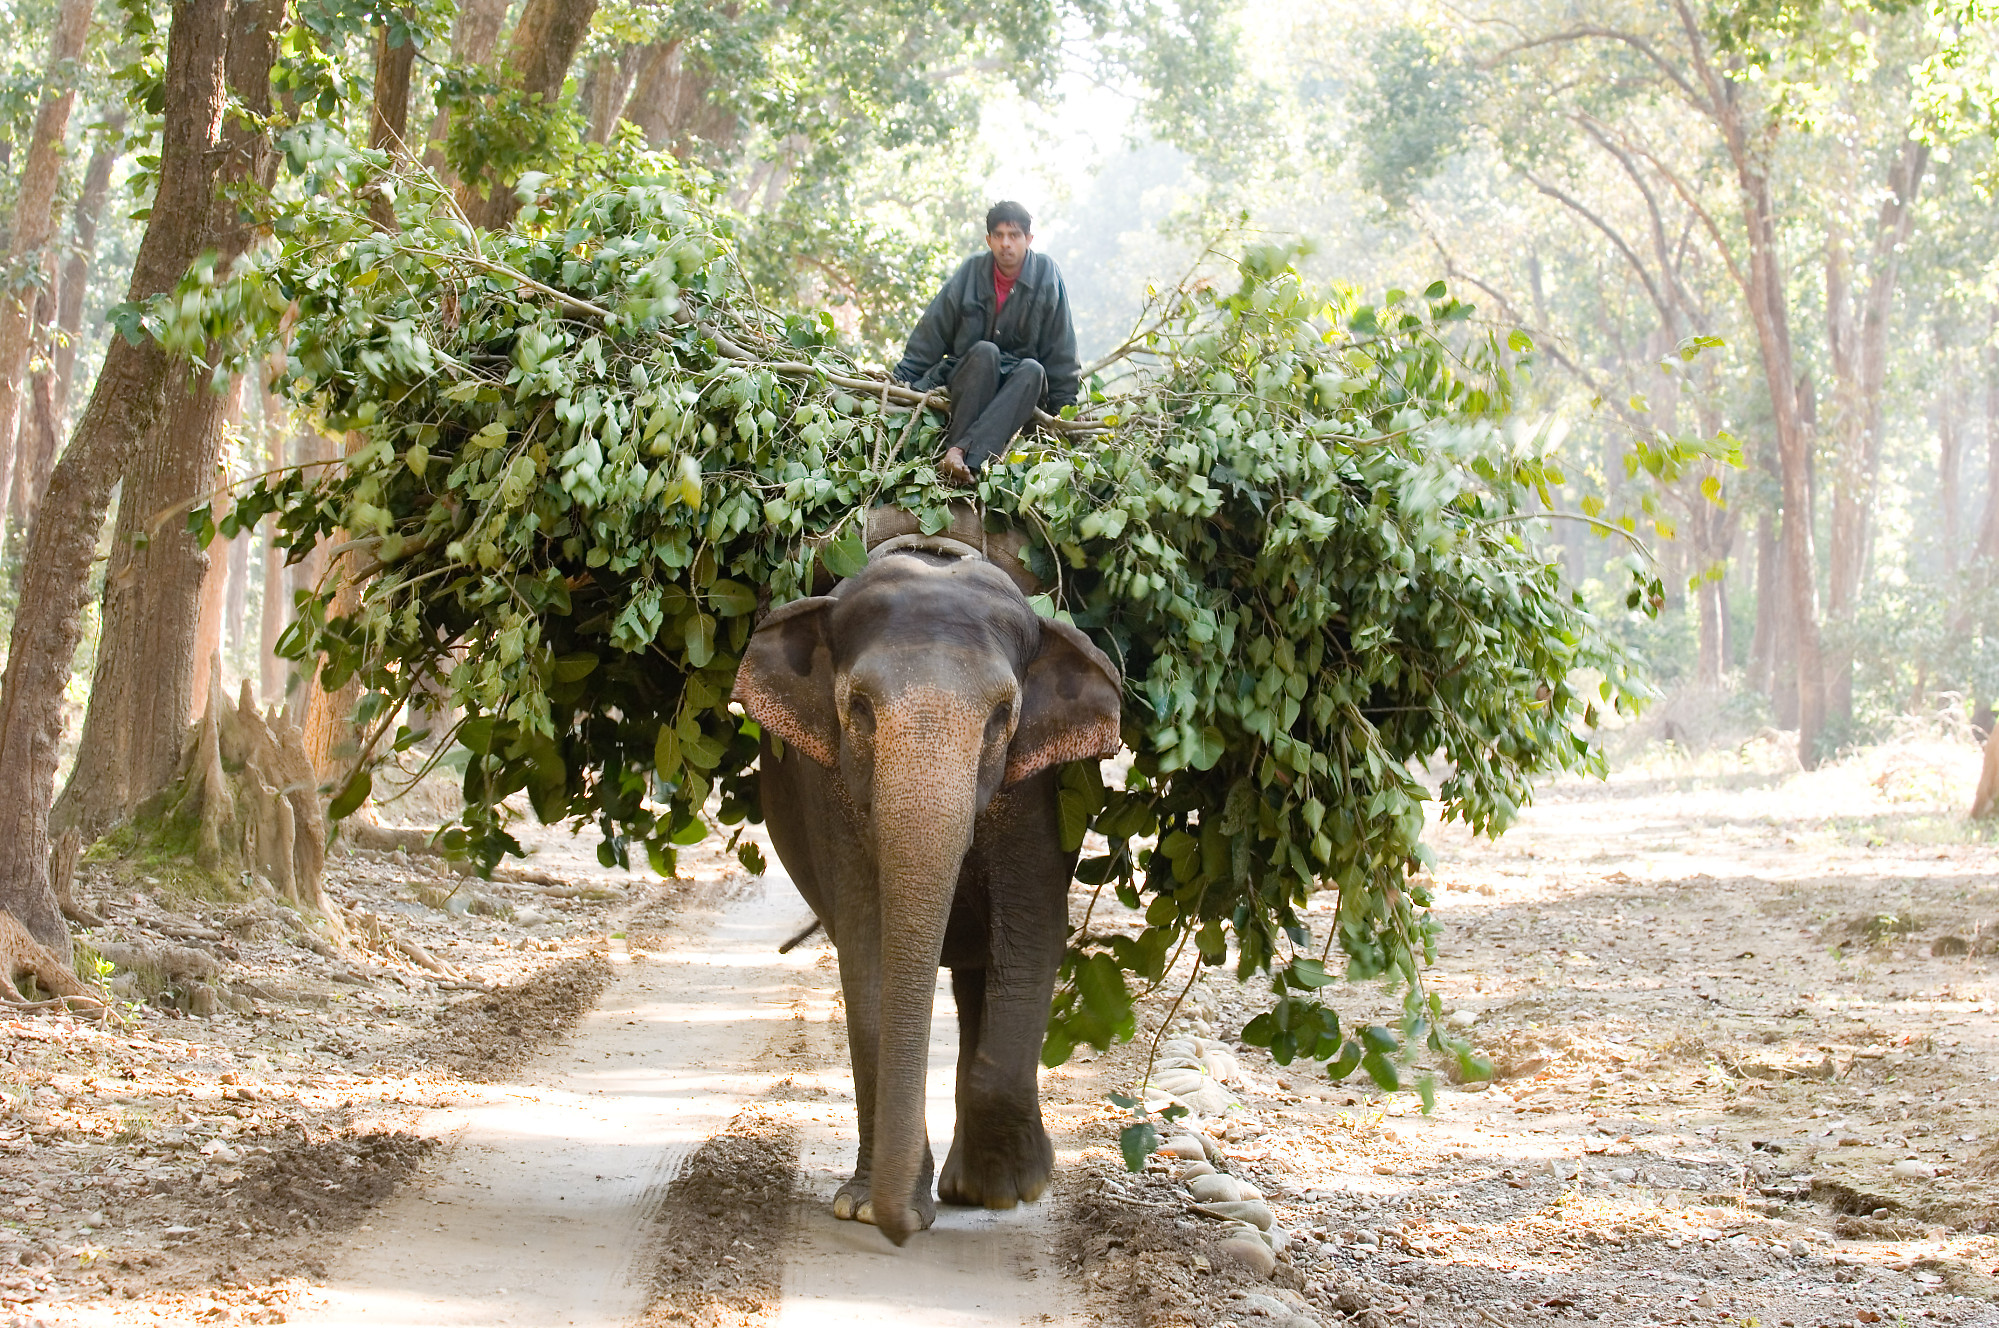 Elephant Hauling Food